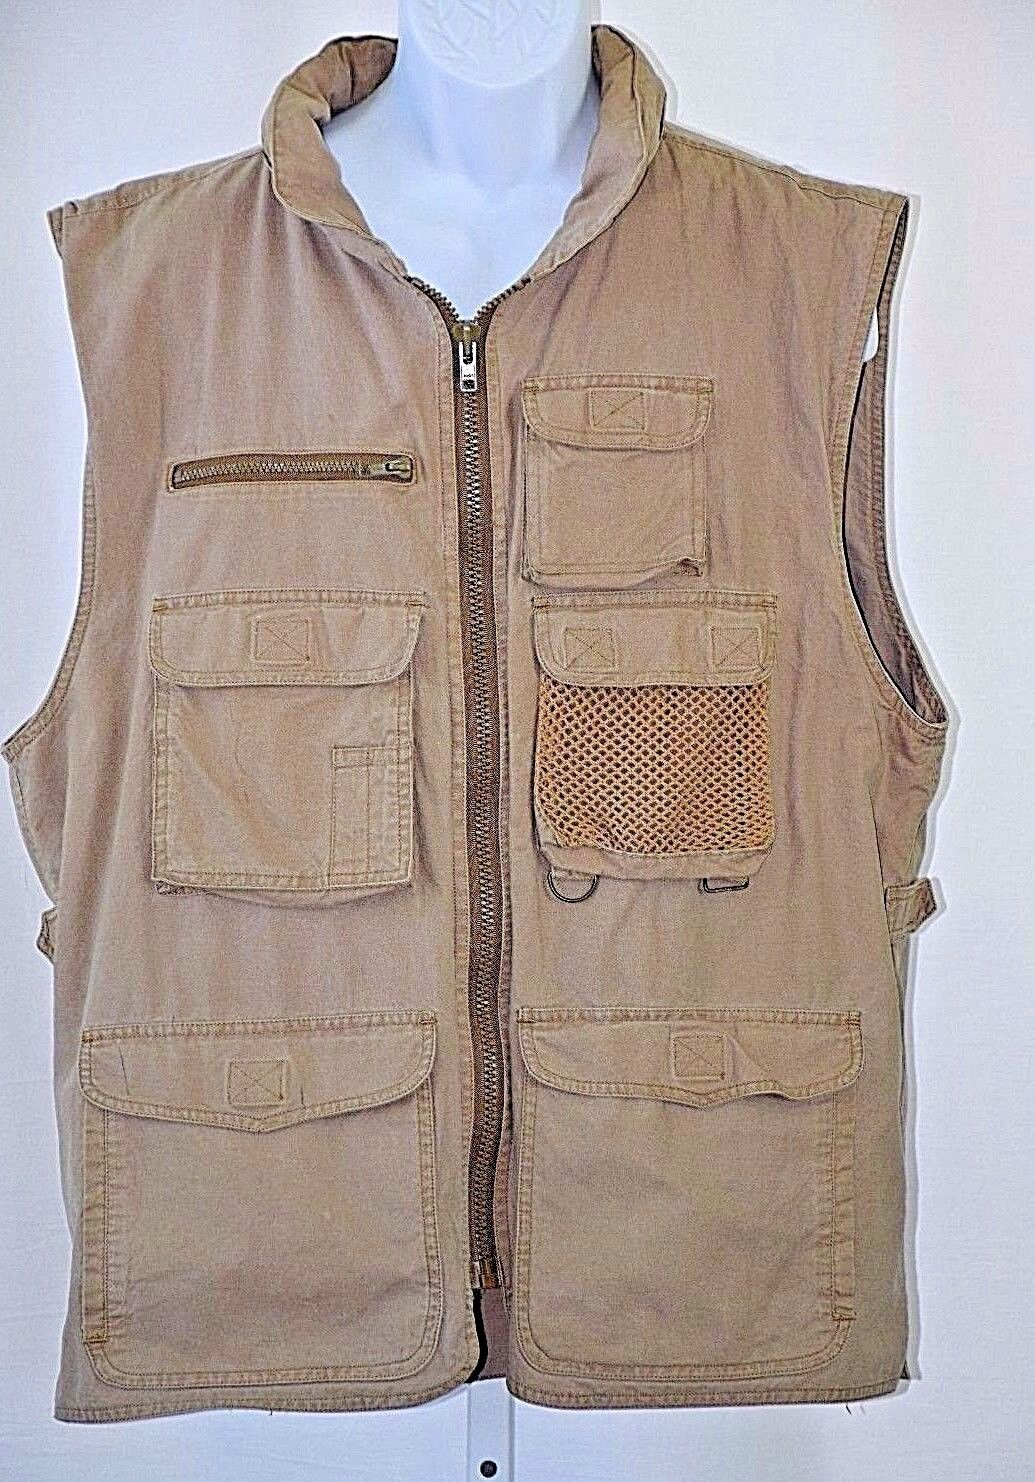 Banana Republic XL Khaki Original Travel Clothing Safari Bush Photography Vest